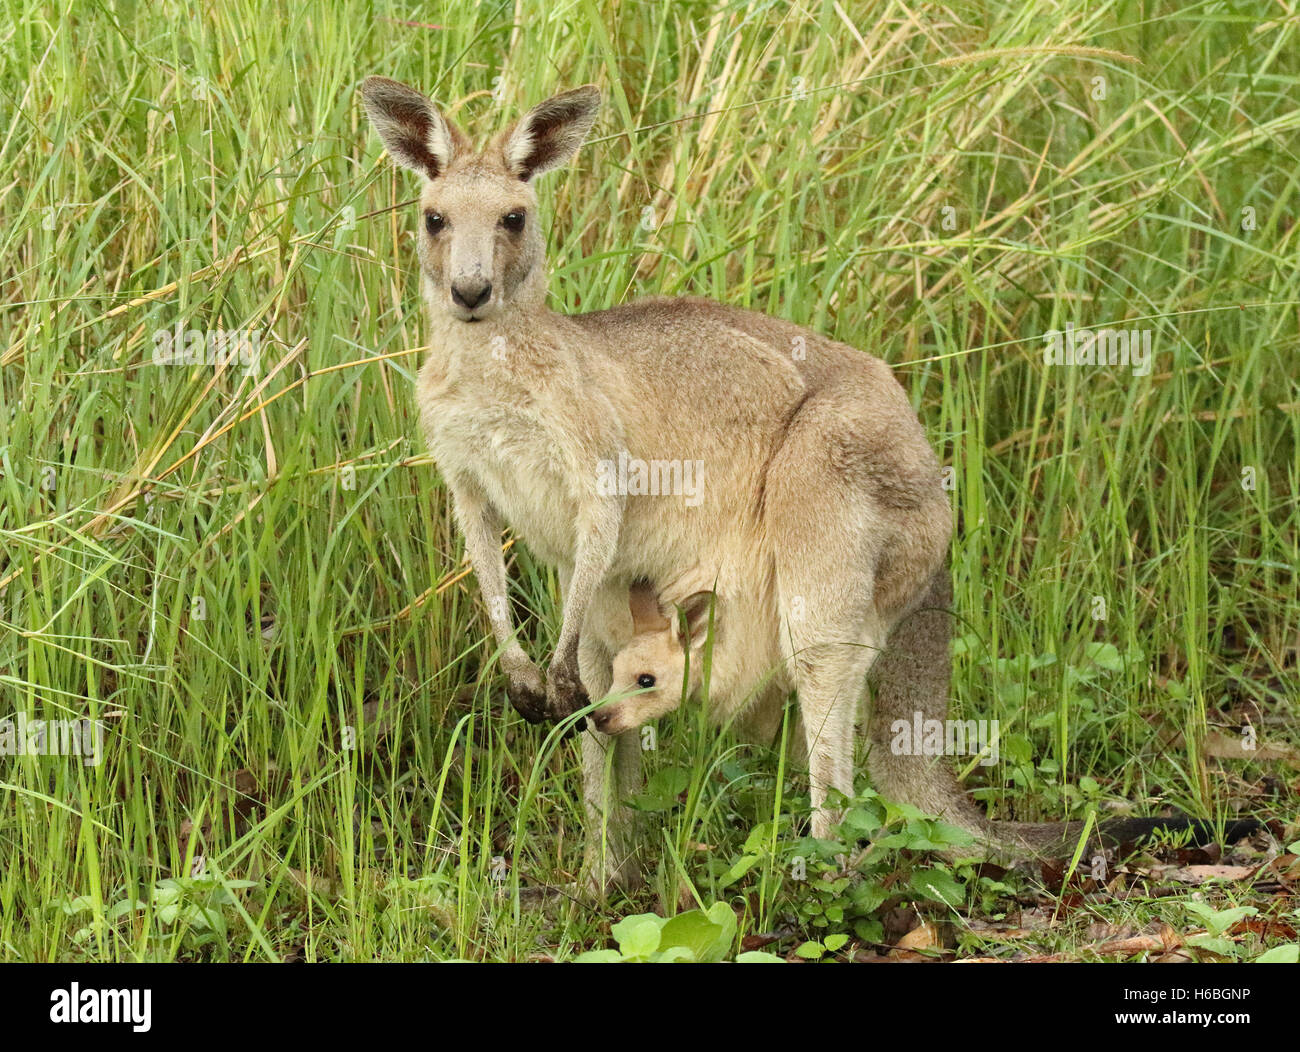 A Kangaroo mother pausing with her baby joey in her pouch. - Stock Image